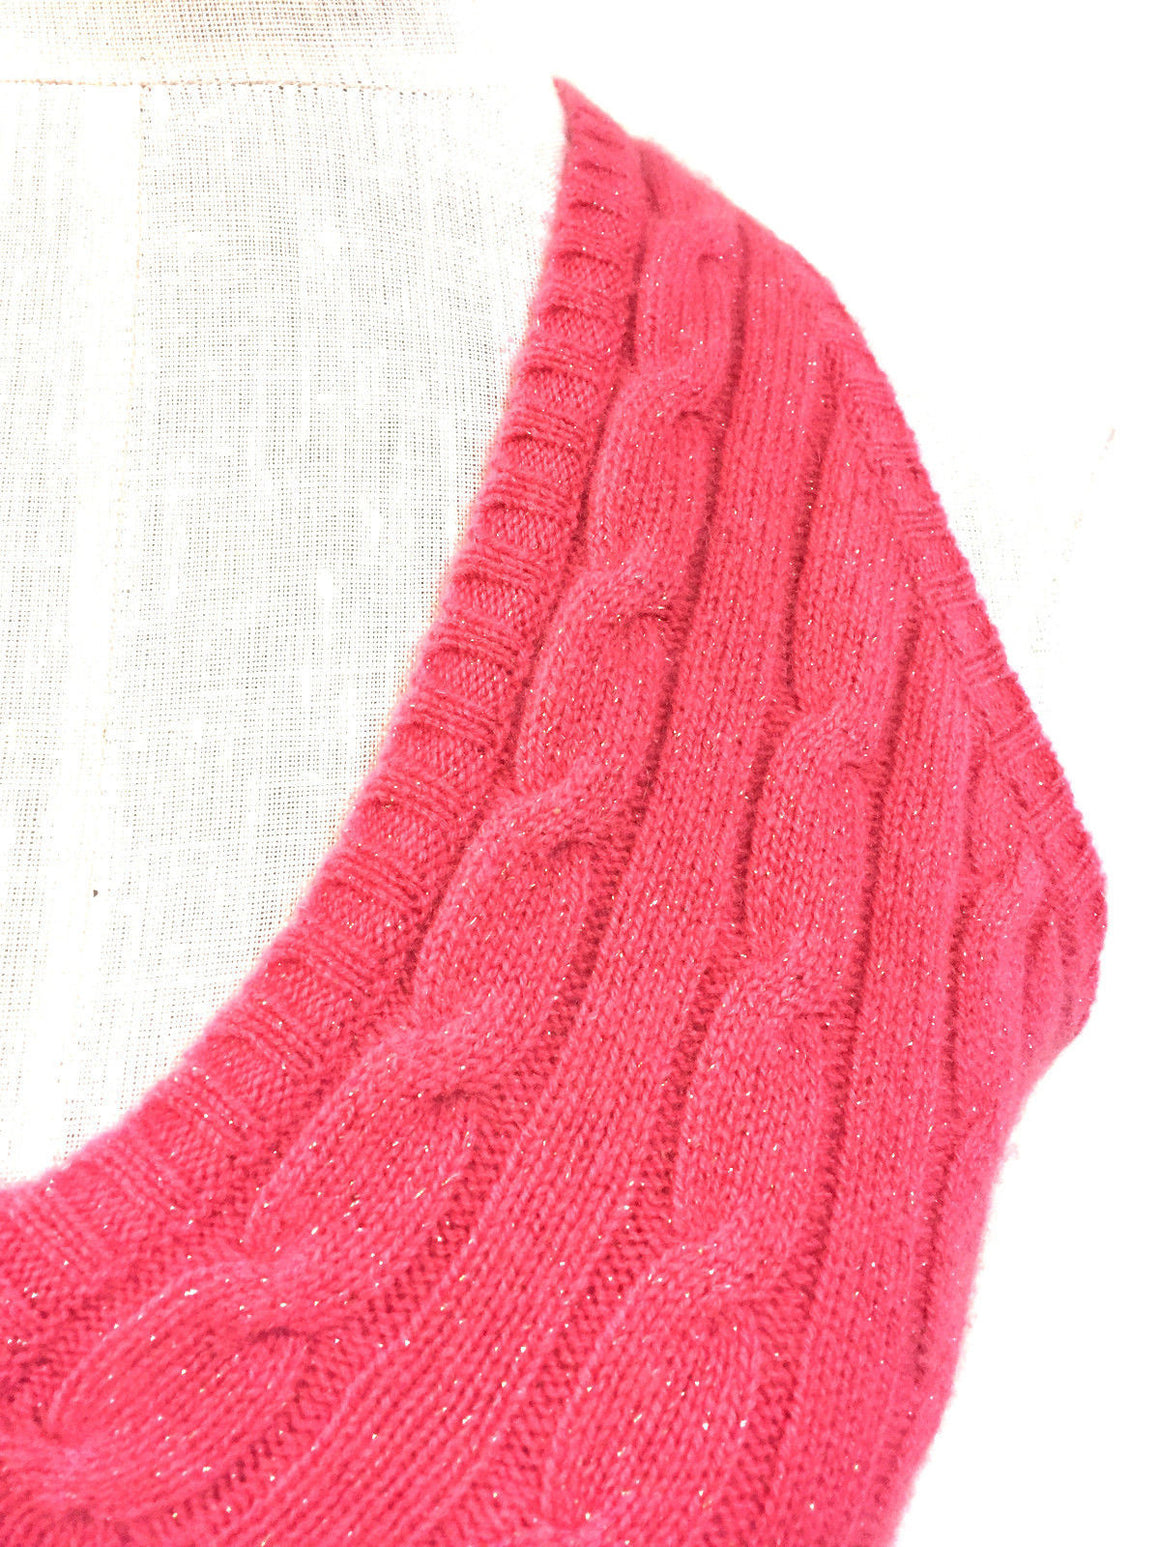 bisbiz.com RALPH LAUREN Coral-Pink Cashmere Gold Shimmer Cable-Knit V-Neck Halter Sweater Top Size: Medium/Large - Bis Luxury Resale